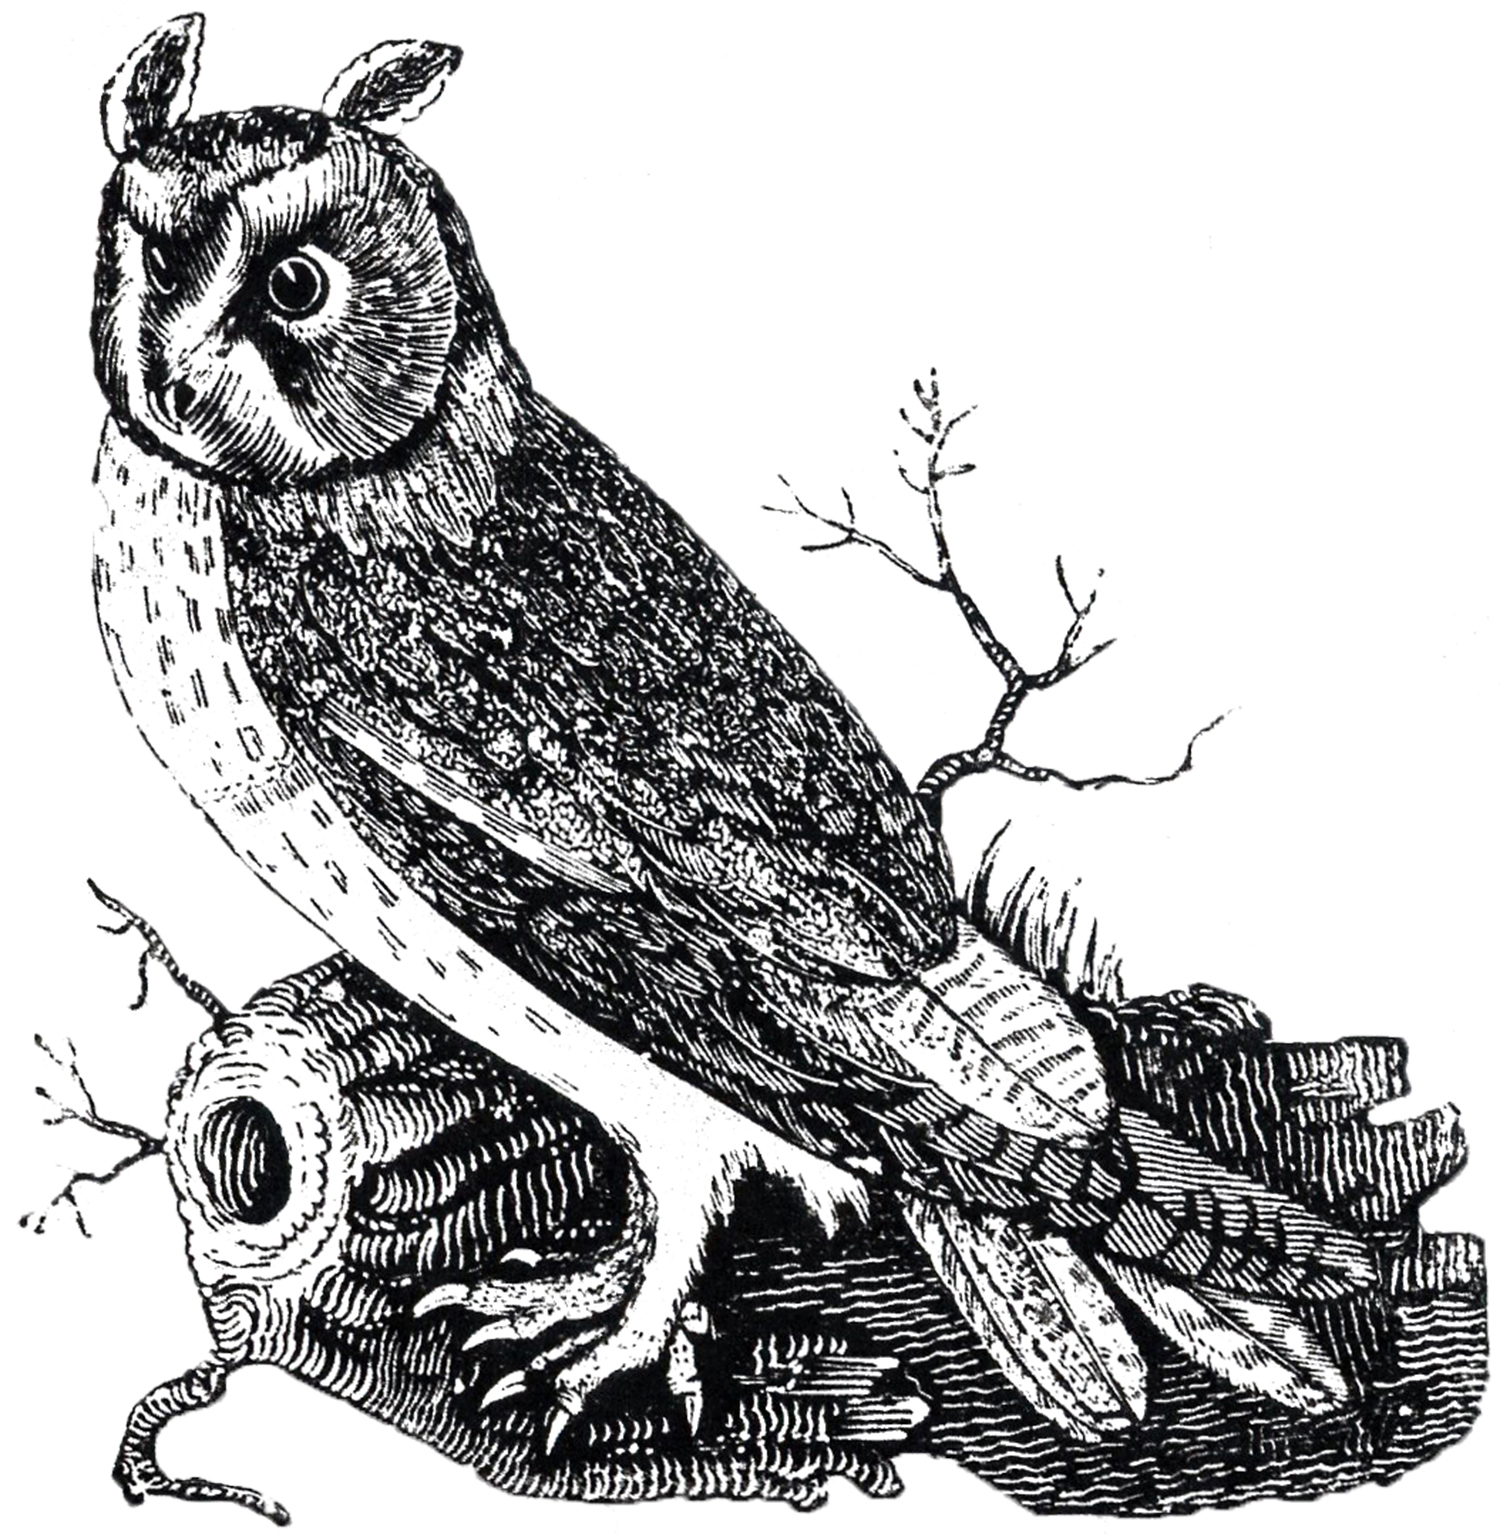 Free Vintage Owl Image - The Graphics Fairy